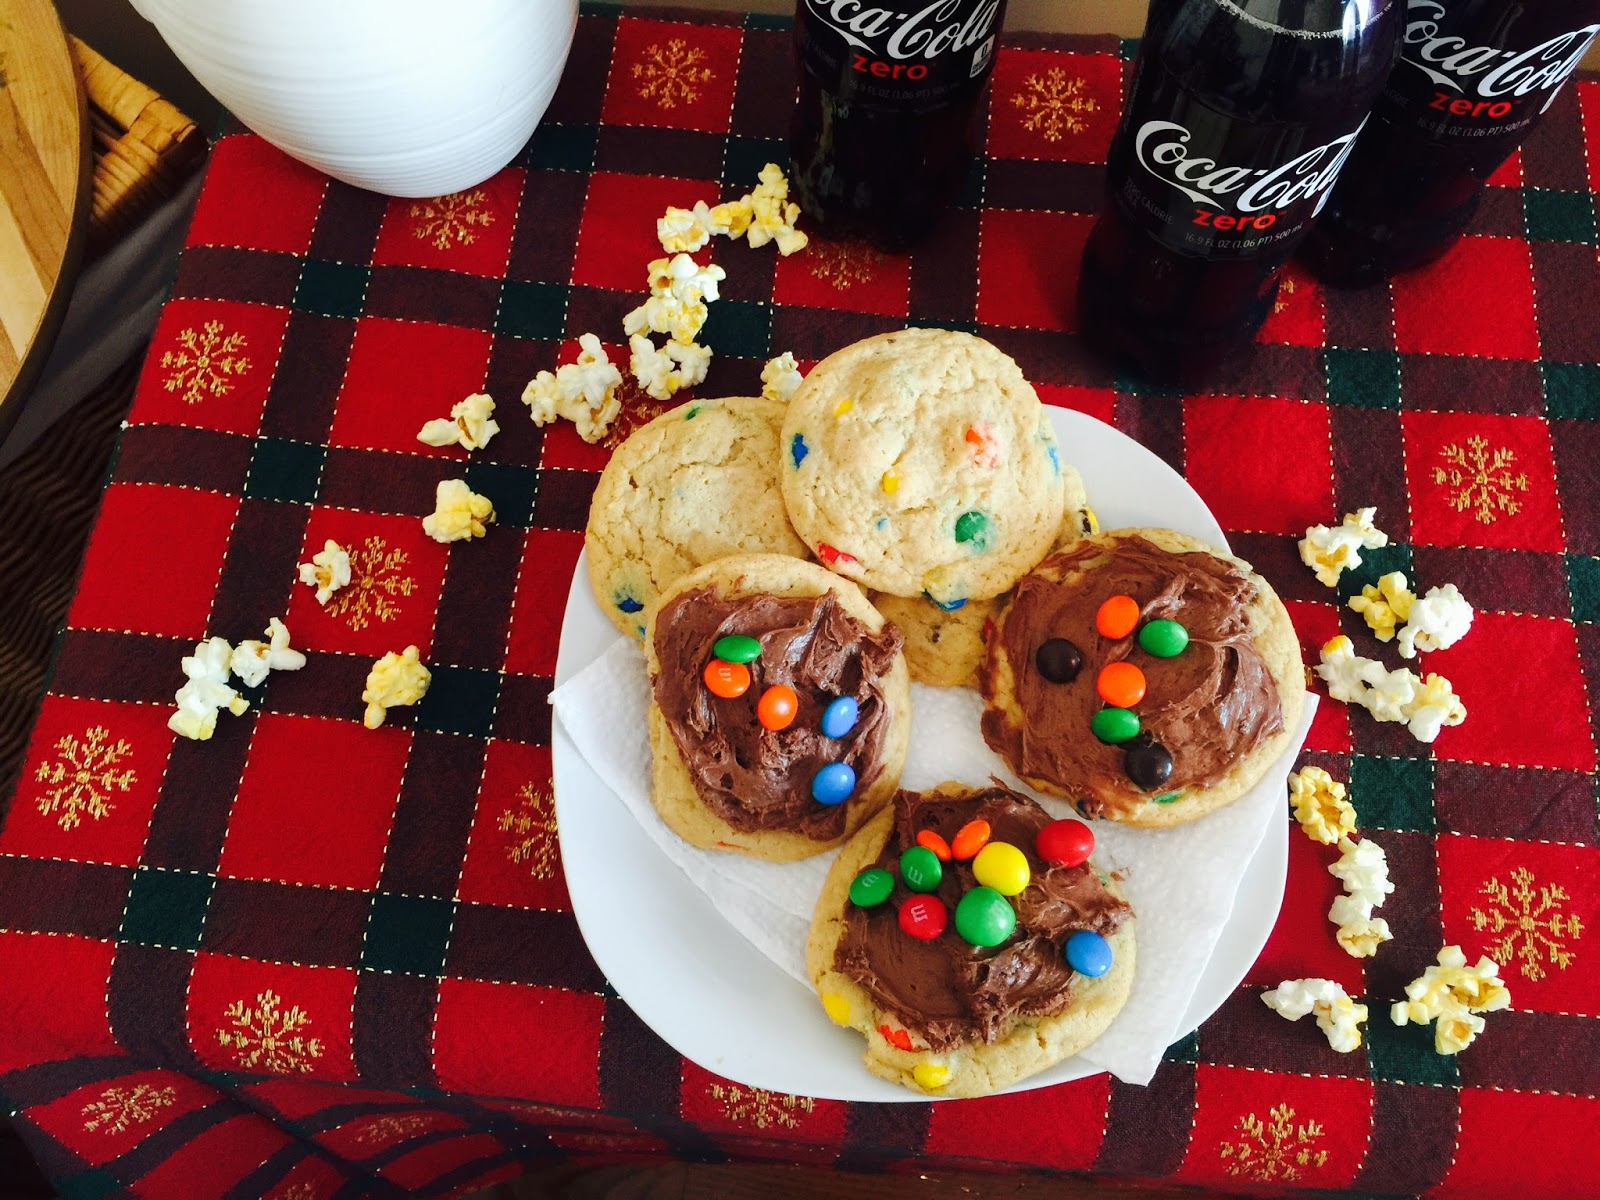 coca-cola zero frosting, coke zero frosting, date night in, hotel Transylvania  2, it's a movie night, m&m cookies, what to make for a date night in, what to watch with your boyfriend or husband, yummy treats,